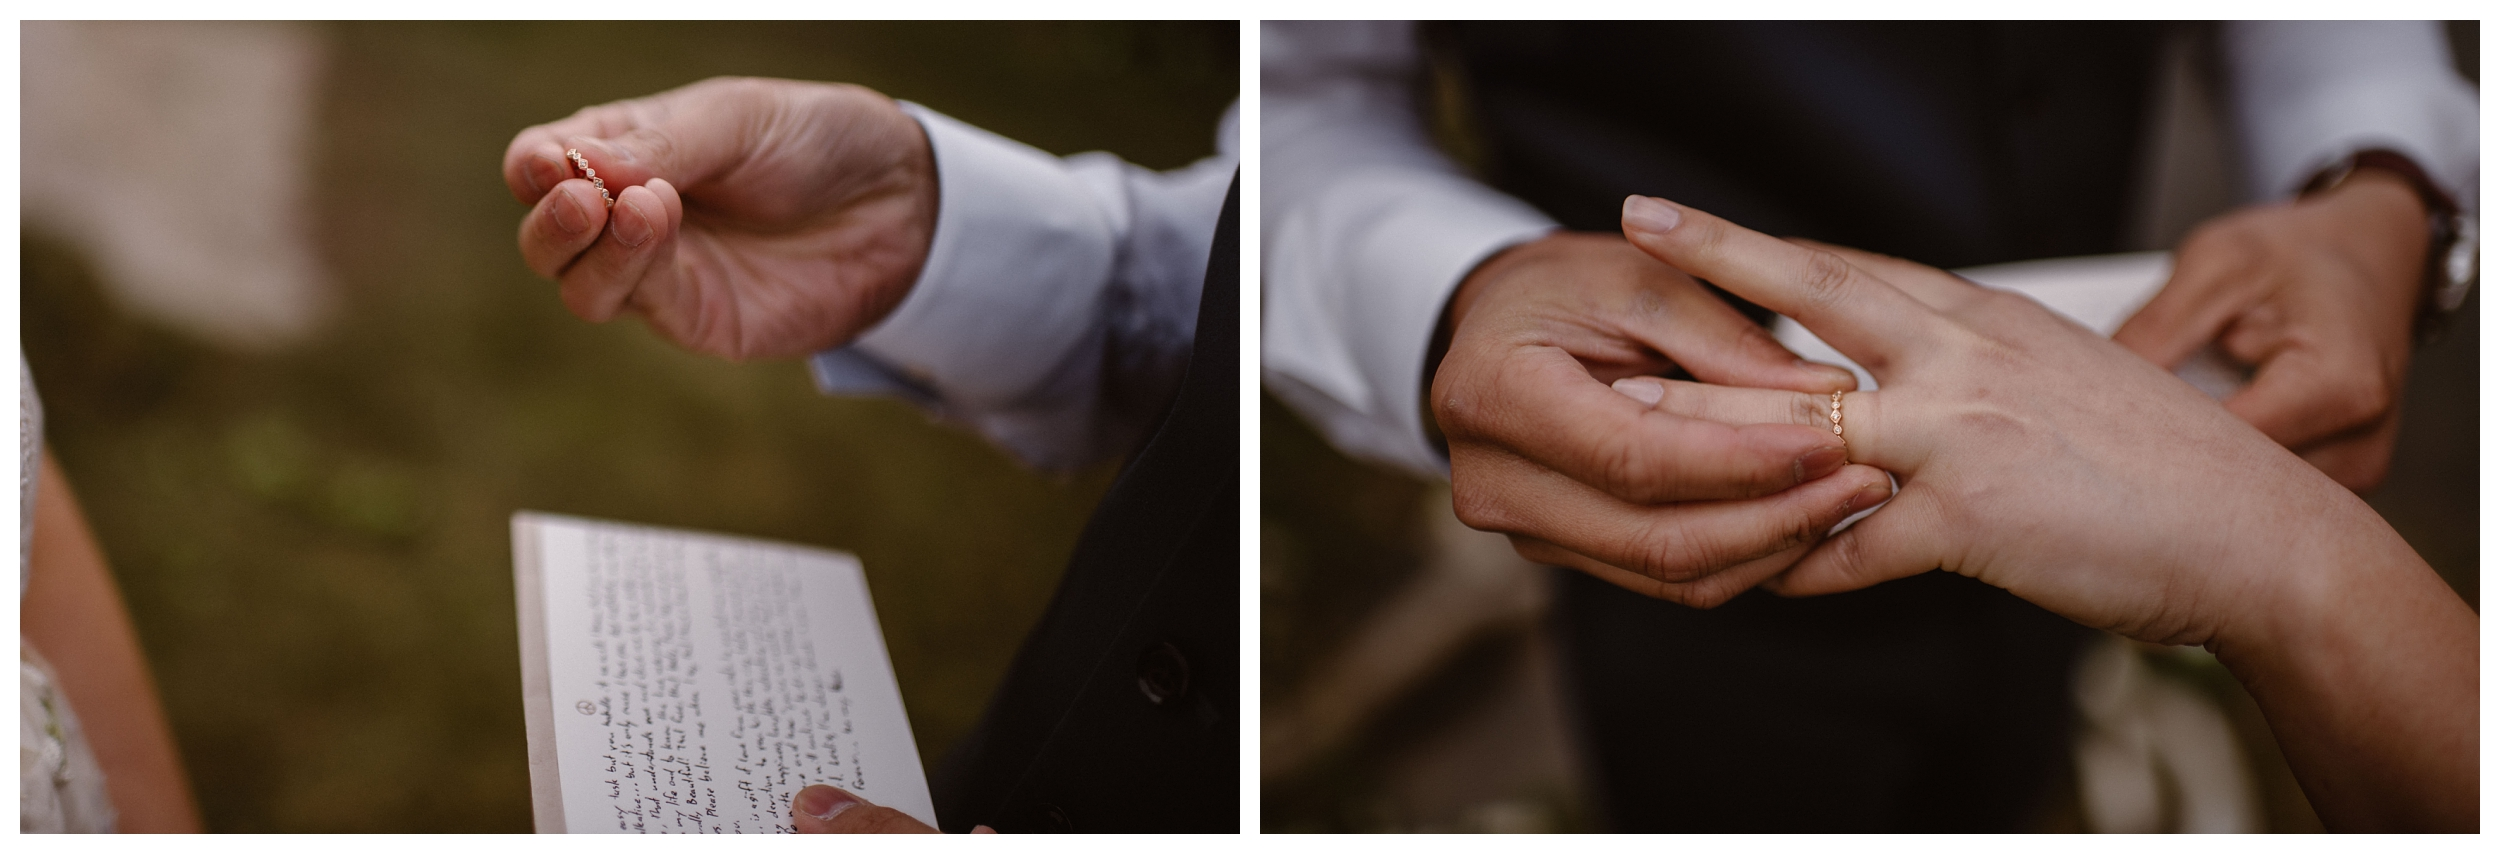 Leslie and Jinson exchanged rings in their self solemnizing ceremony in the Rocky Mountains outside Estes Park, Colorado. Photo by Maddie Mae Photo, Adventure Instead.